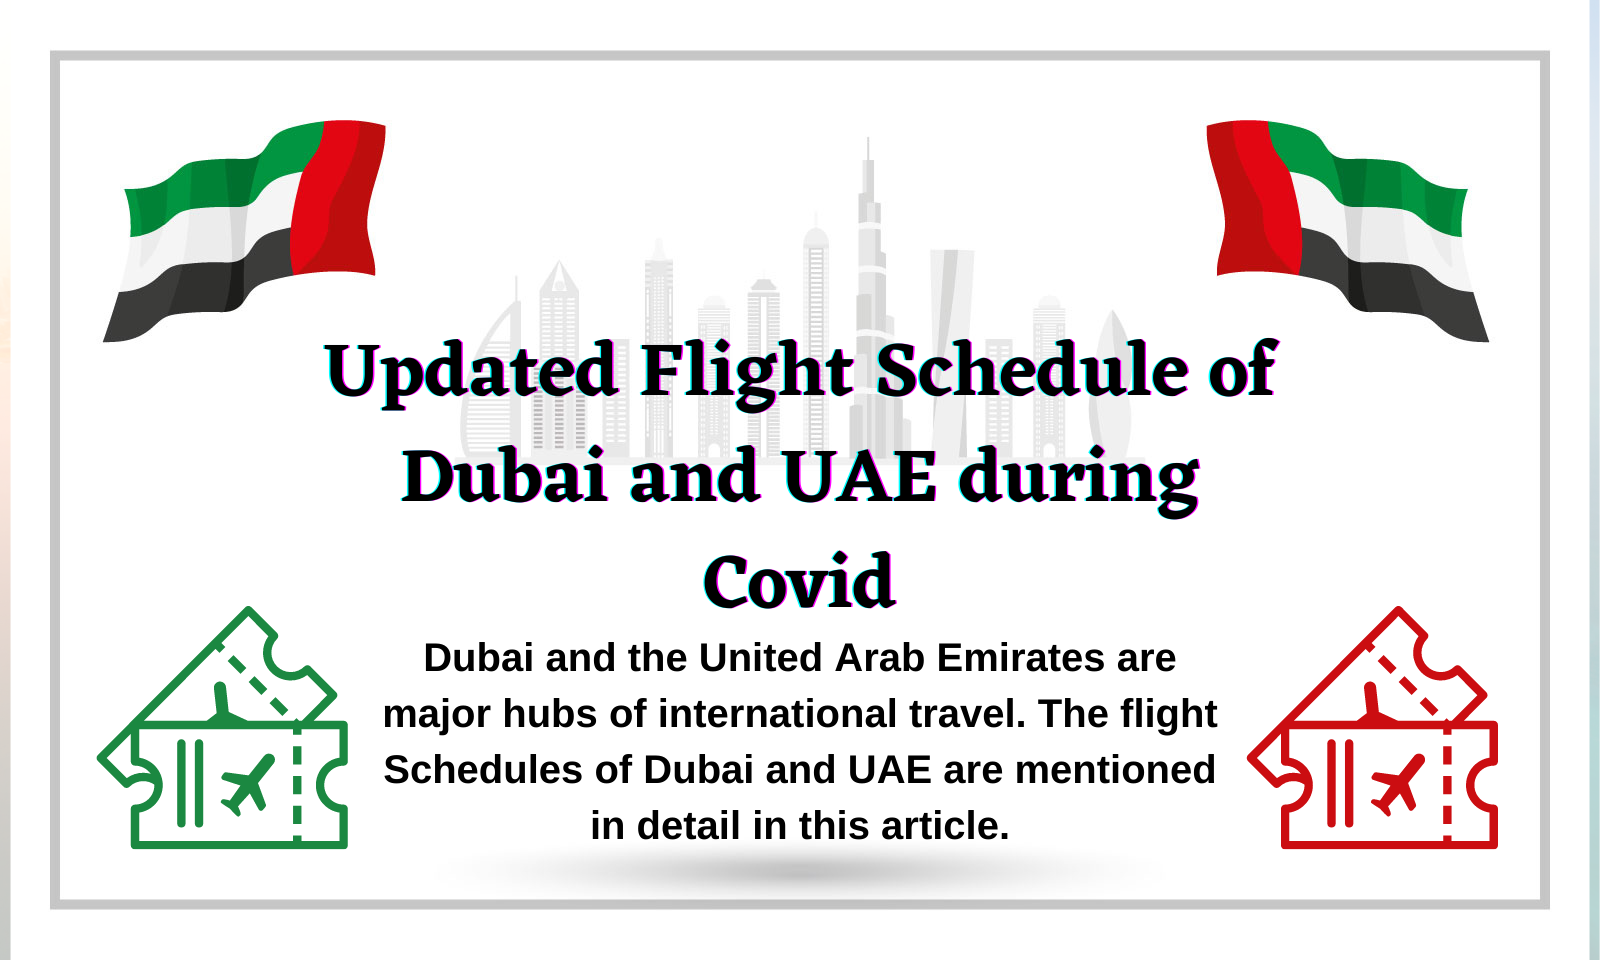 Updated Flight Schedule of Dubai and UAE during Covid